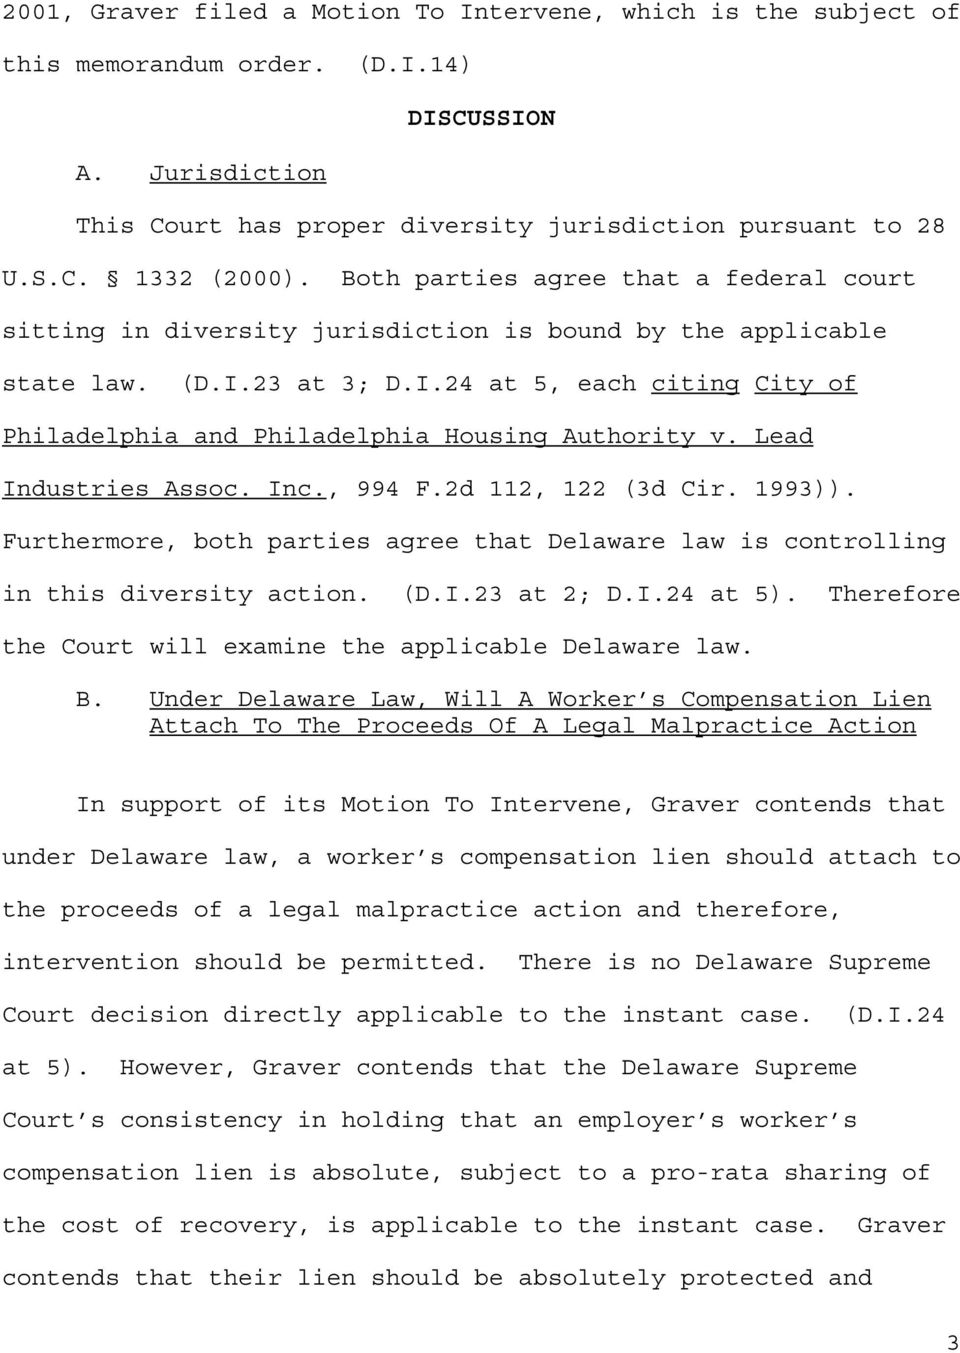 Lead Industries Assoc. Inc., 994 F.2d 112, 122 (3d Cir. 1993)). Furthermore, both parties agree that Delaware law is controlling in this diversity action. (D.I.23 at 2; D.I.24 at 5).